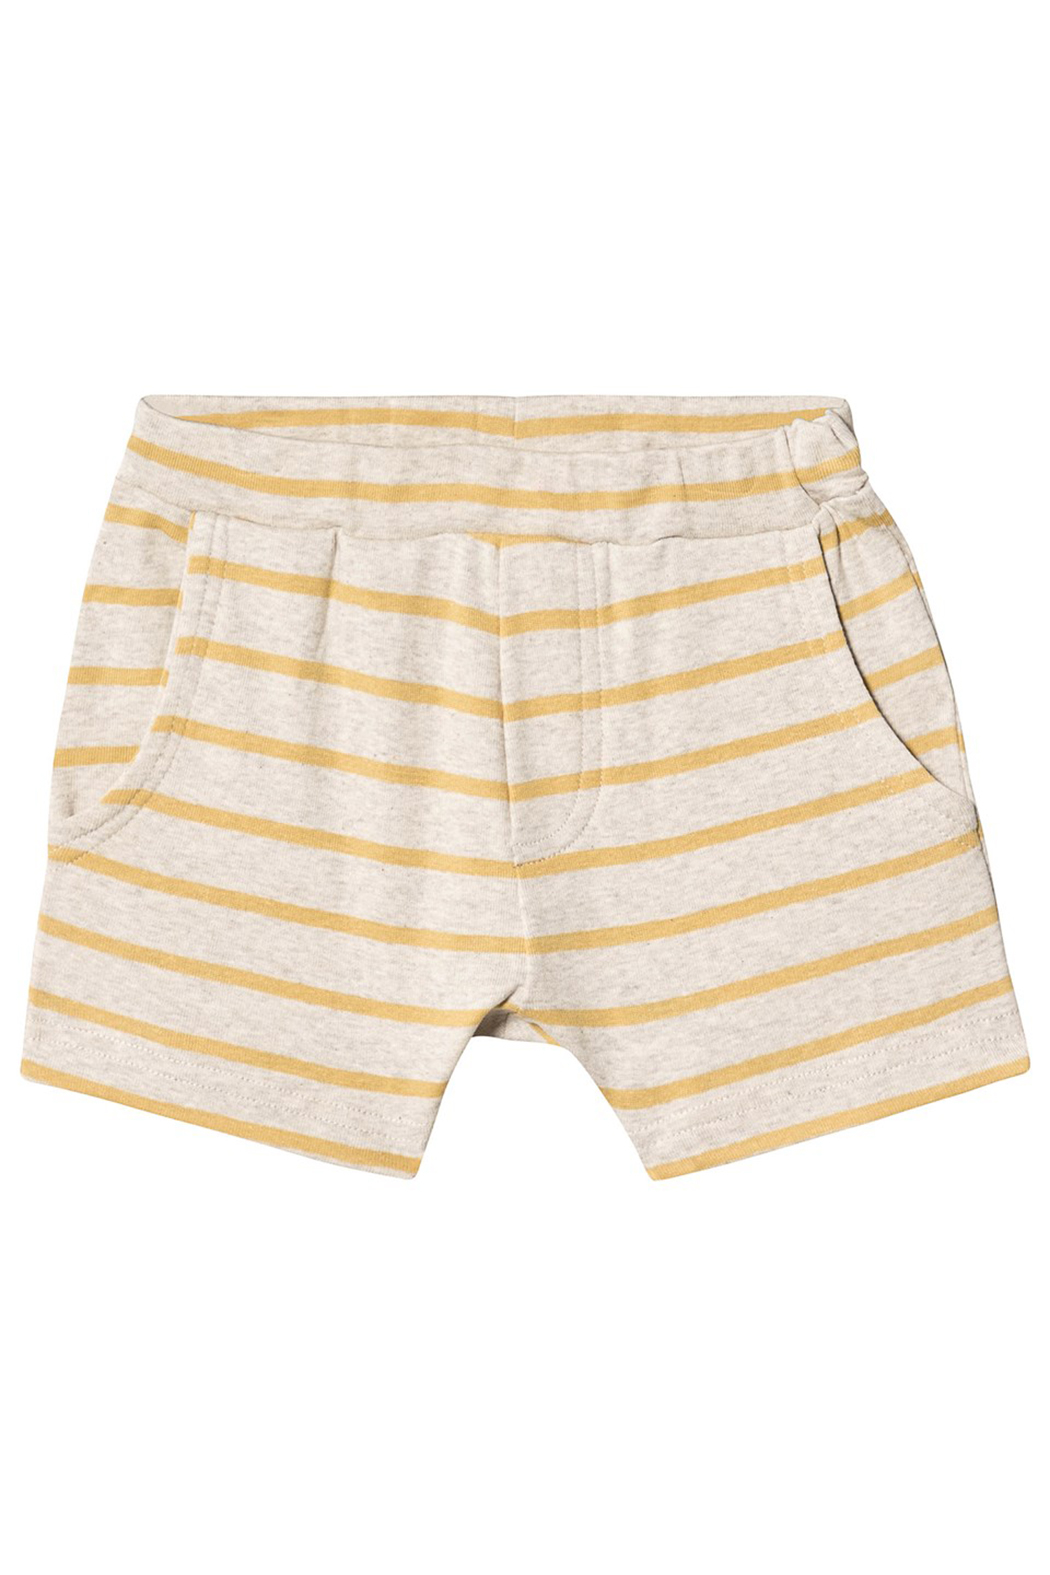 Wheat Aske Shorts - Main Image